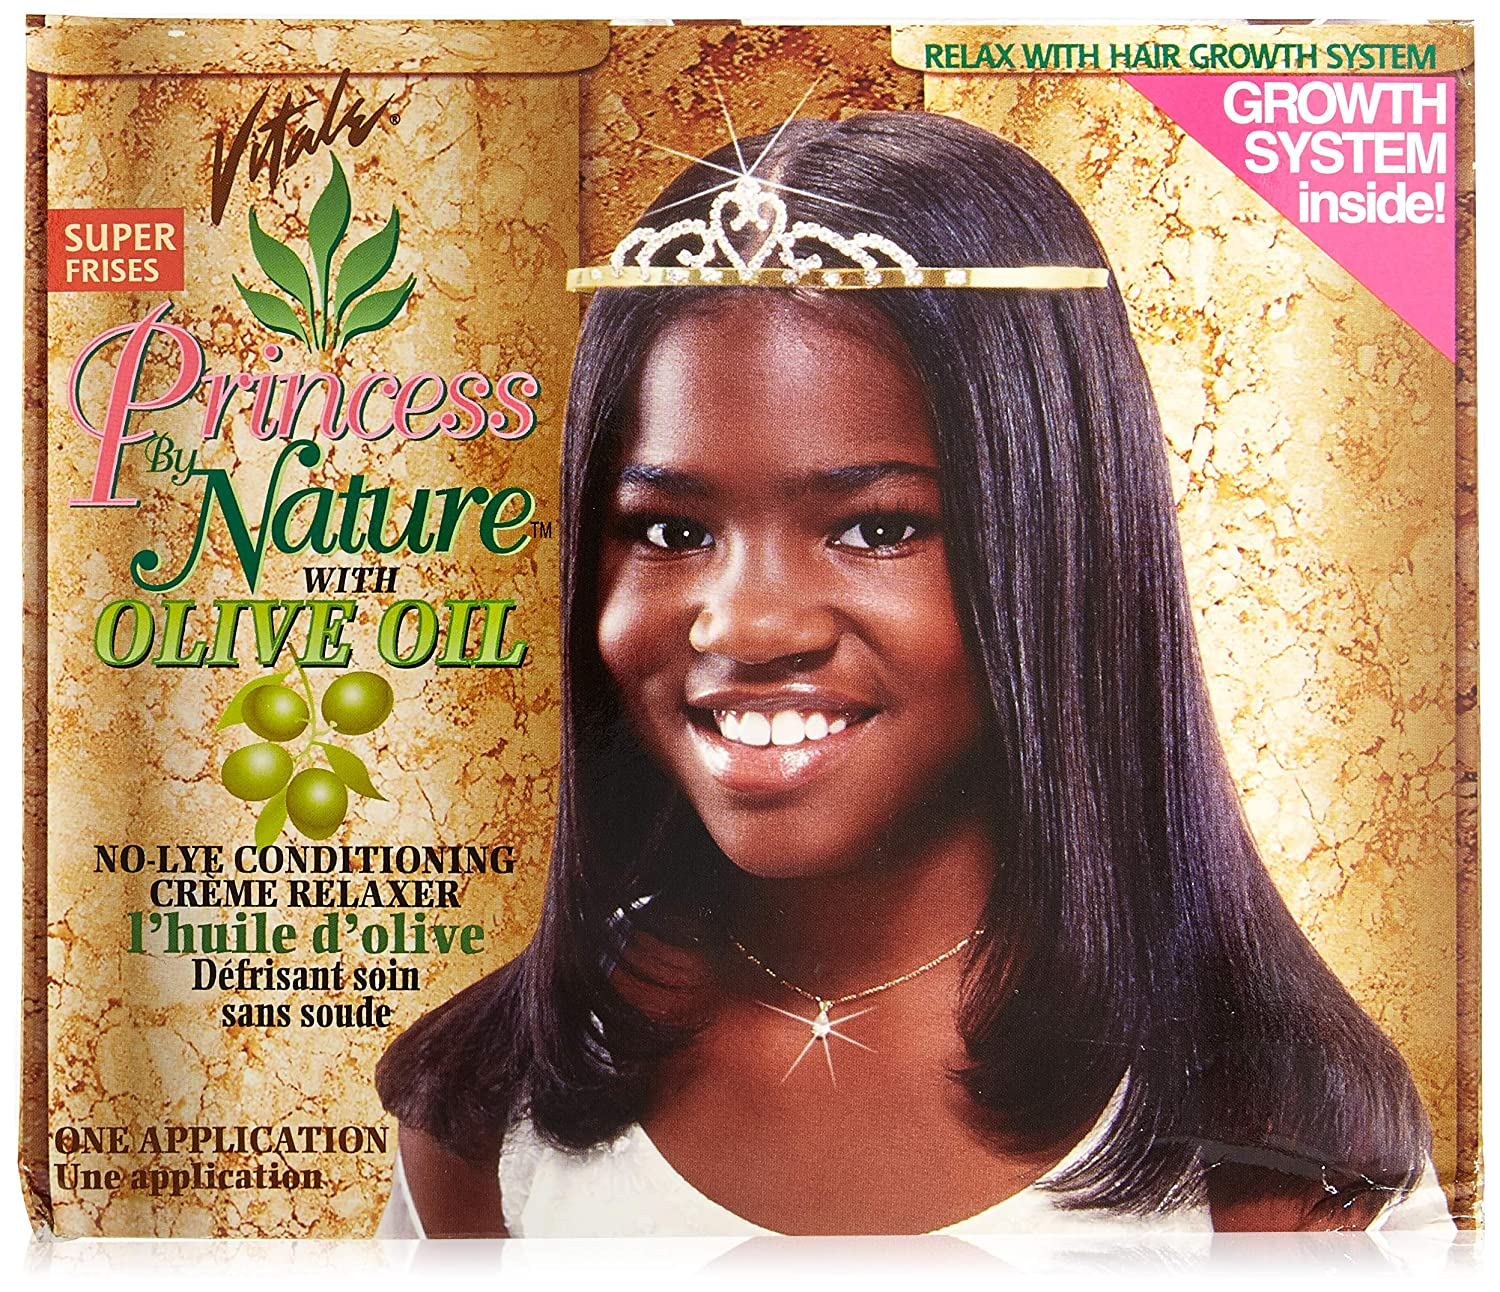 Vitale Olive Oil Princess By Nature Relaxer Kit, Super